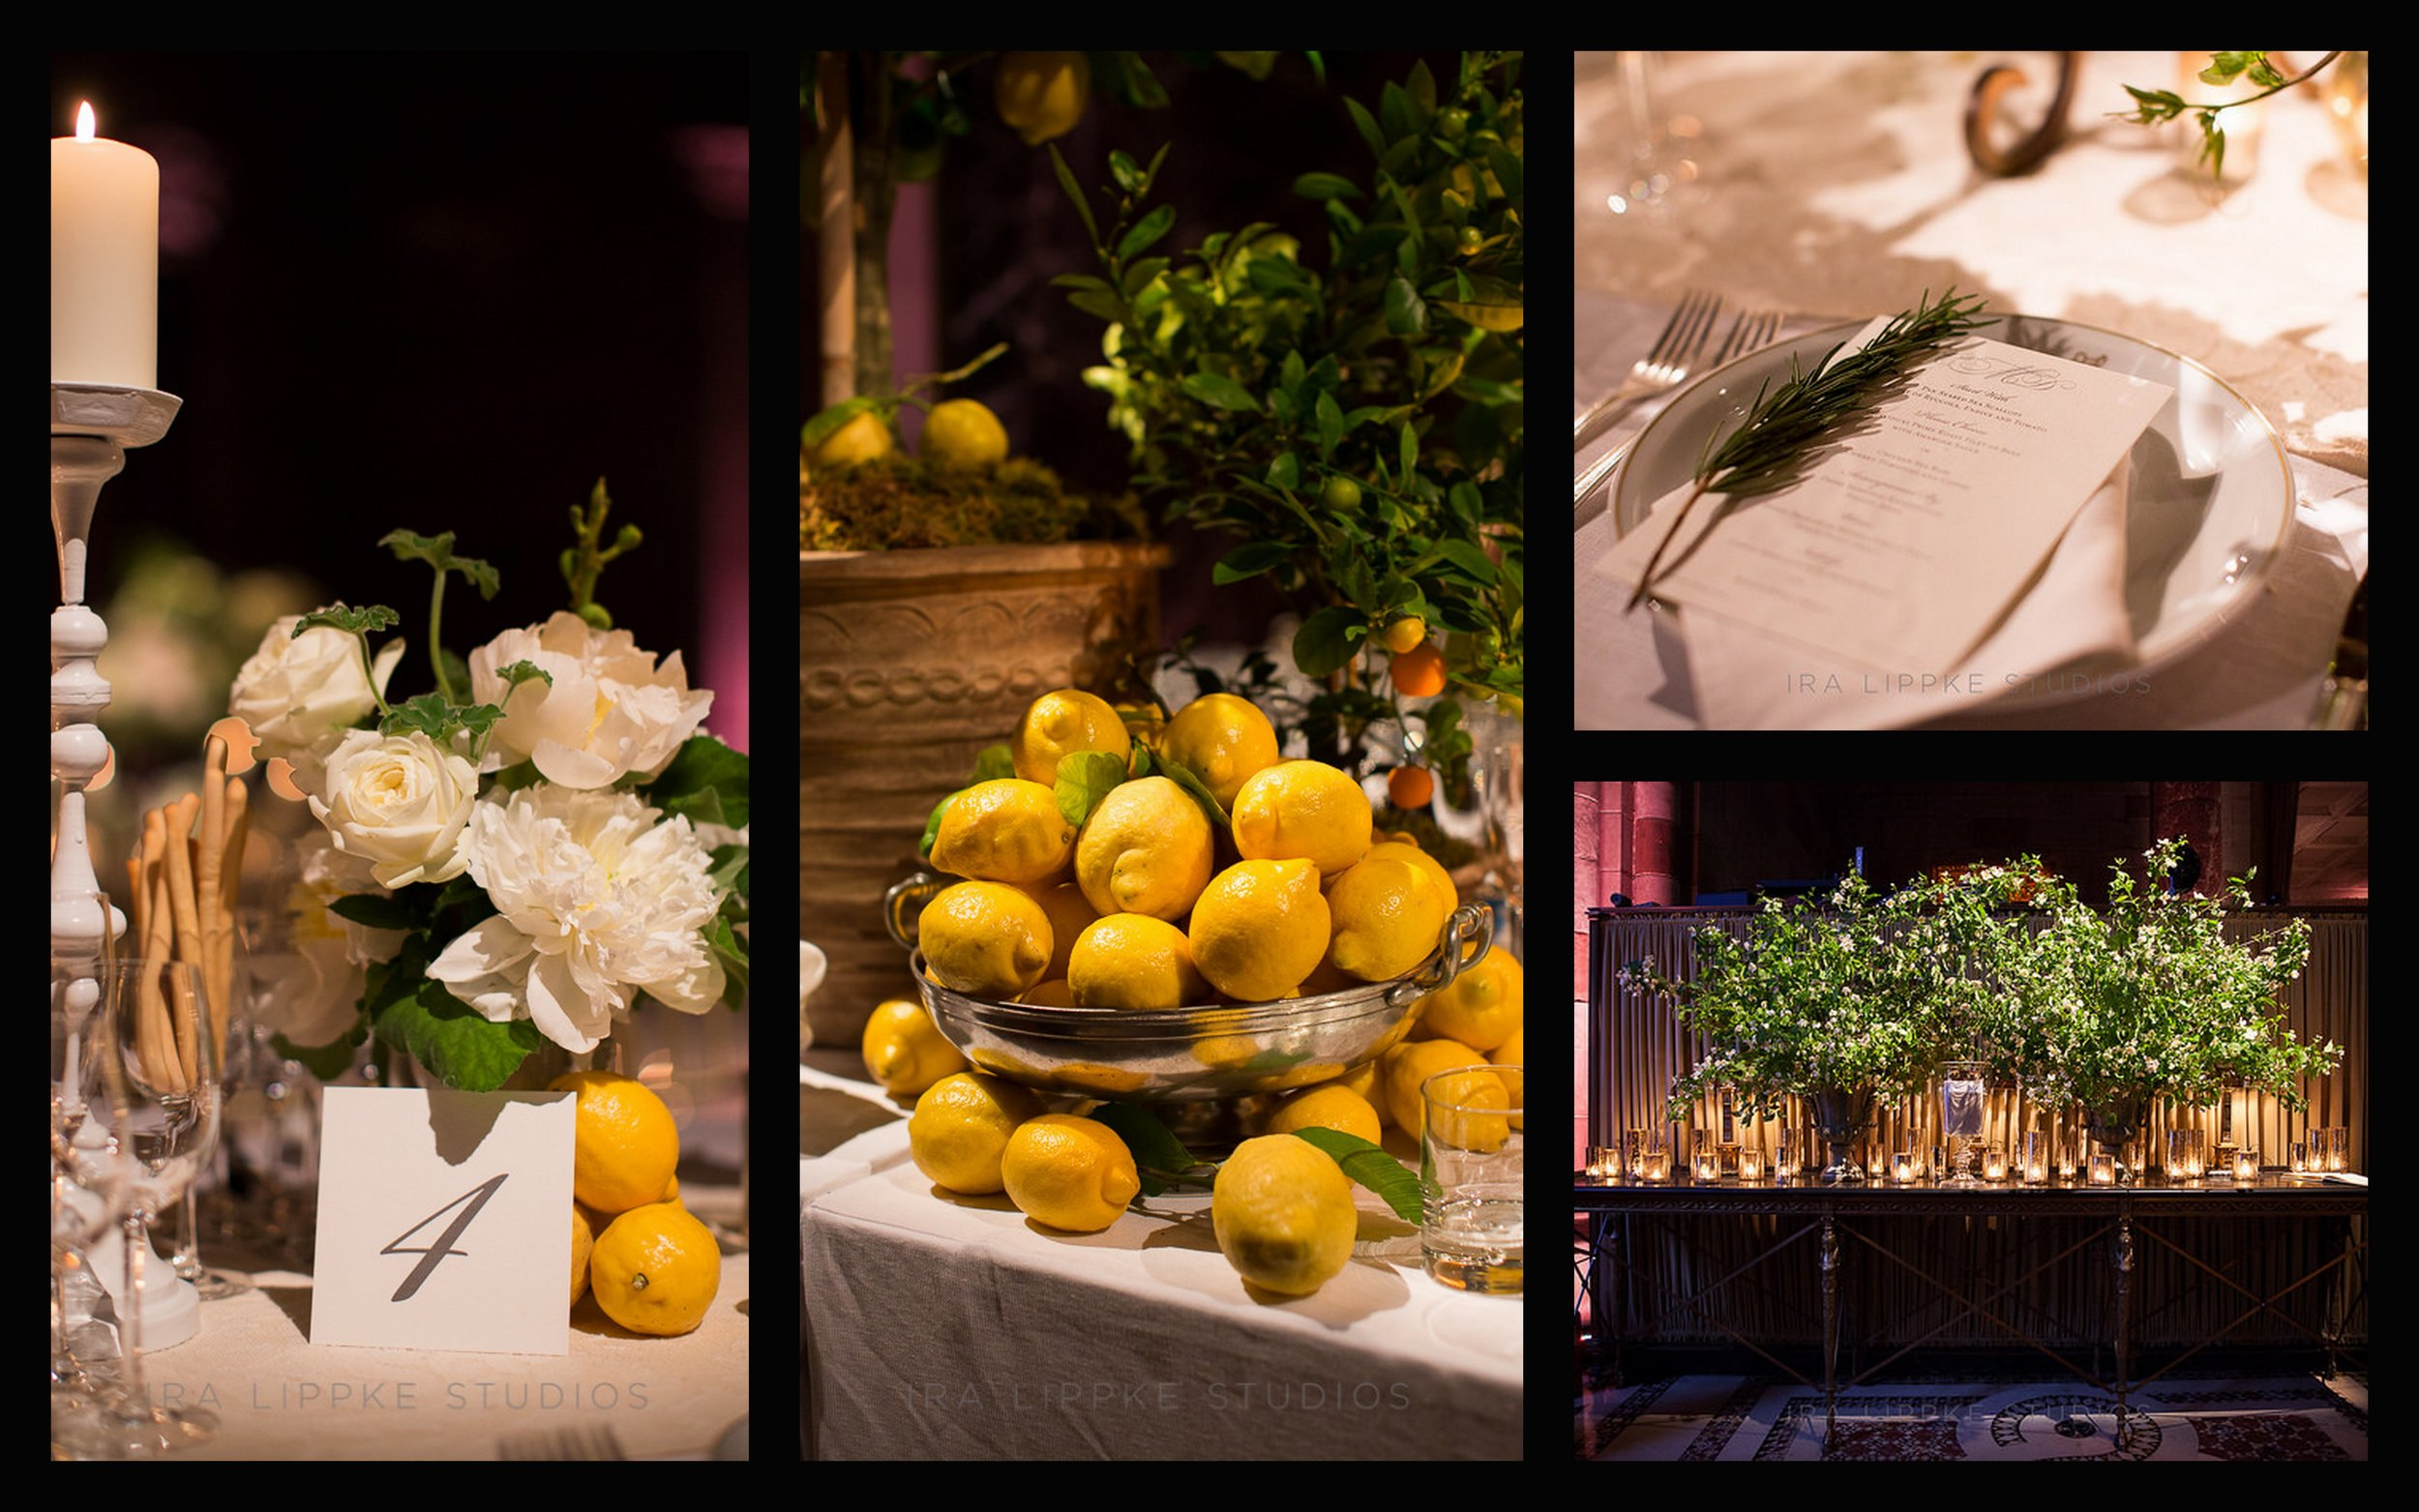 Table numbers, lemons as decor, rosemary on plate with menu